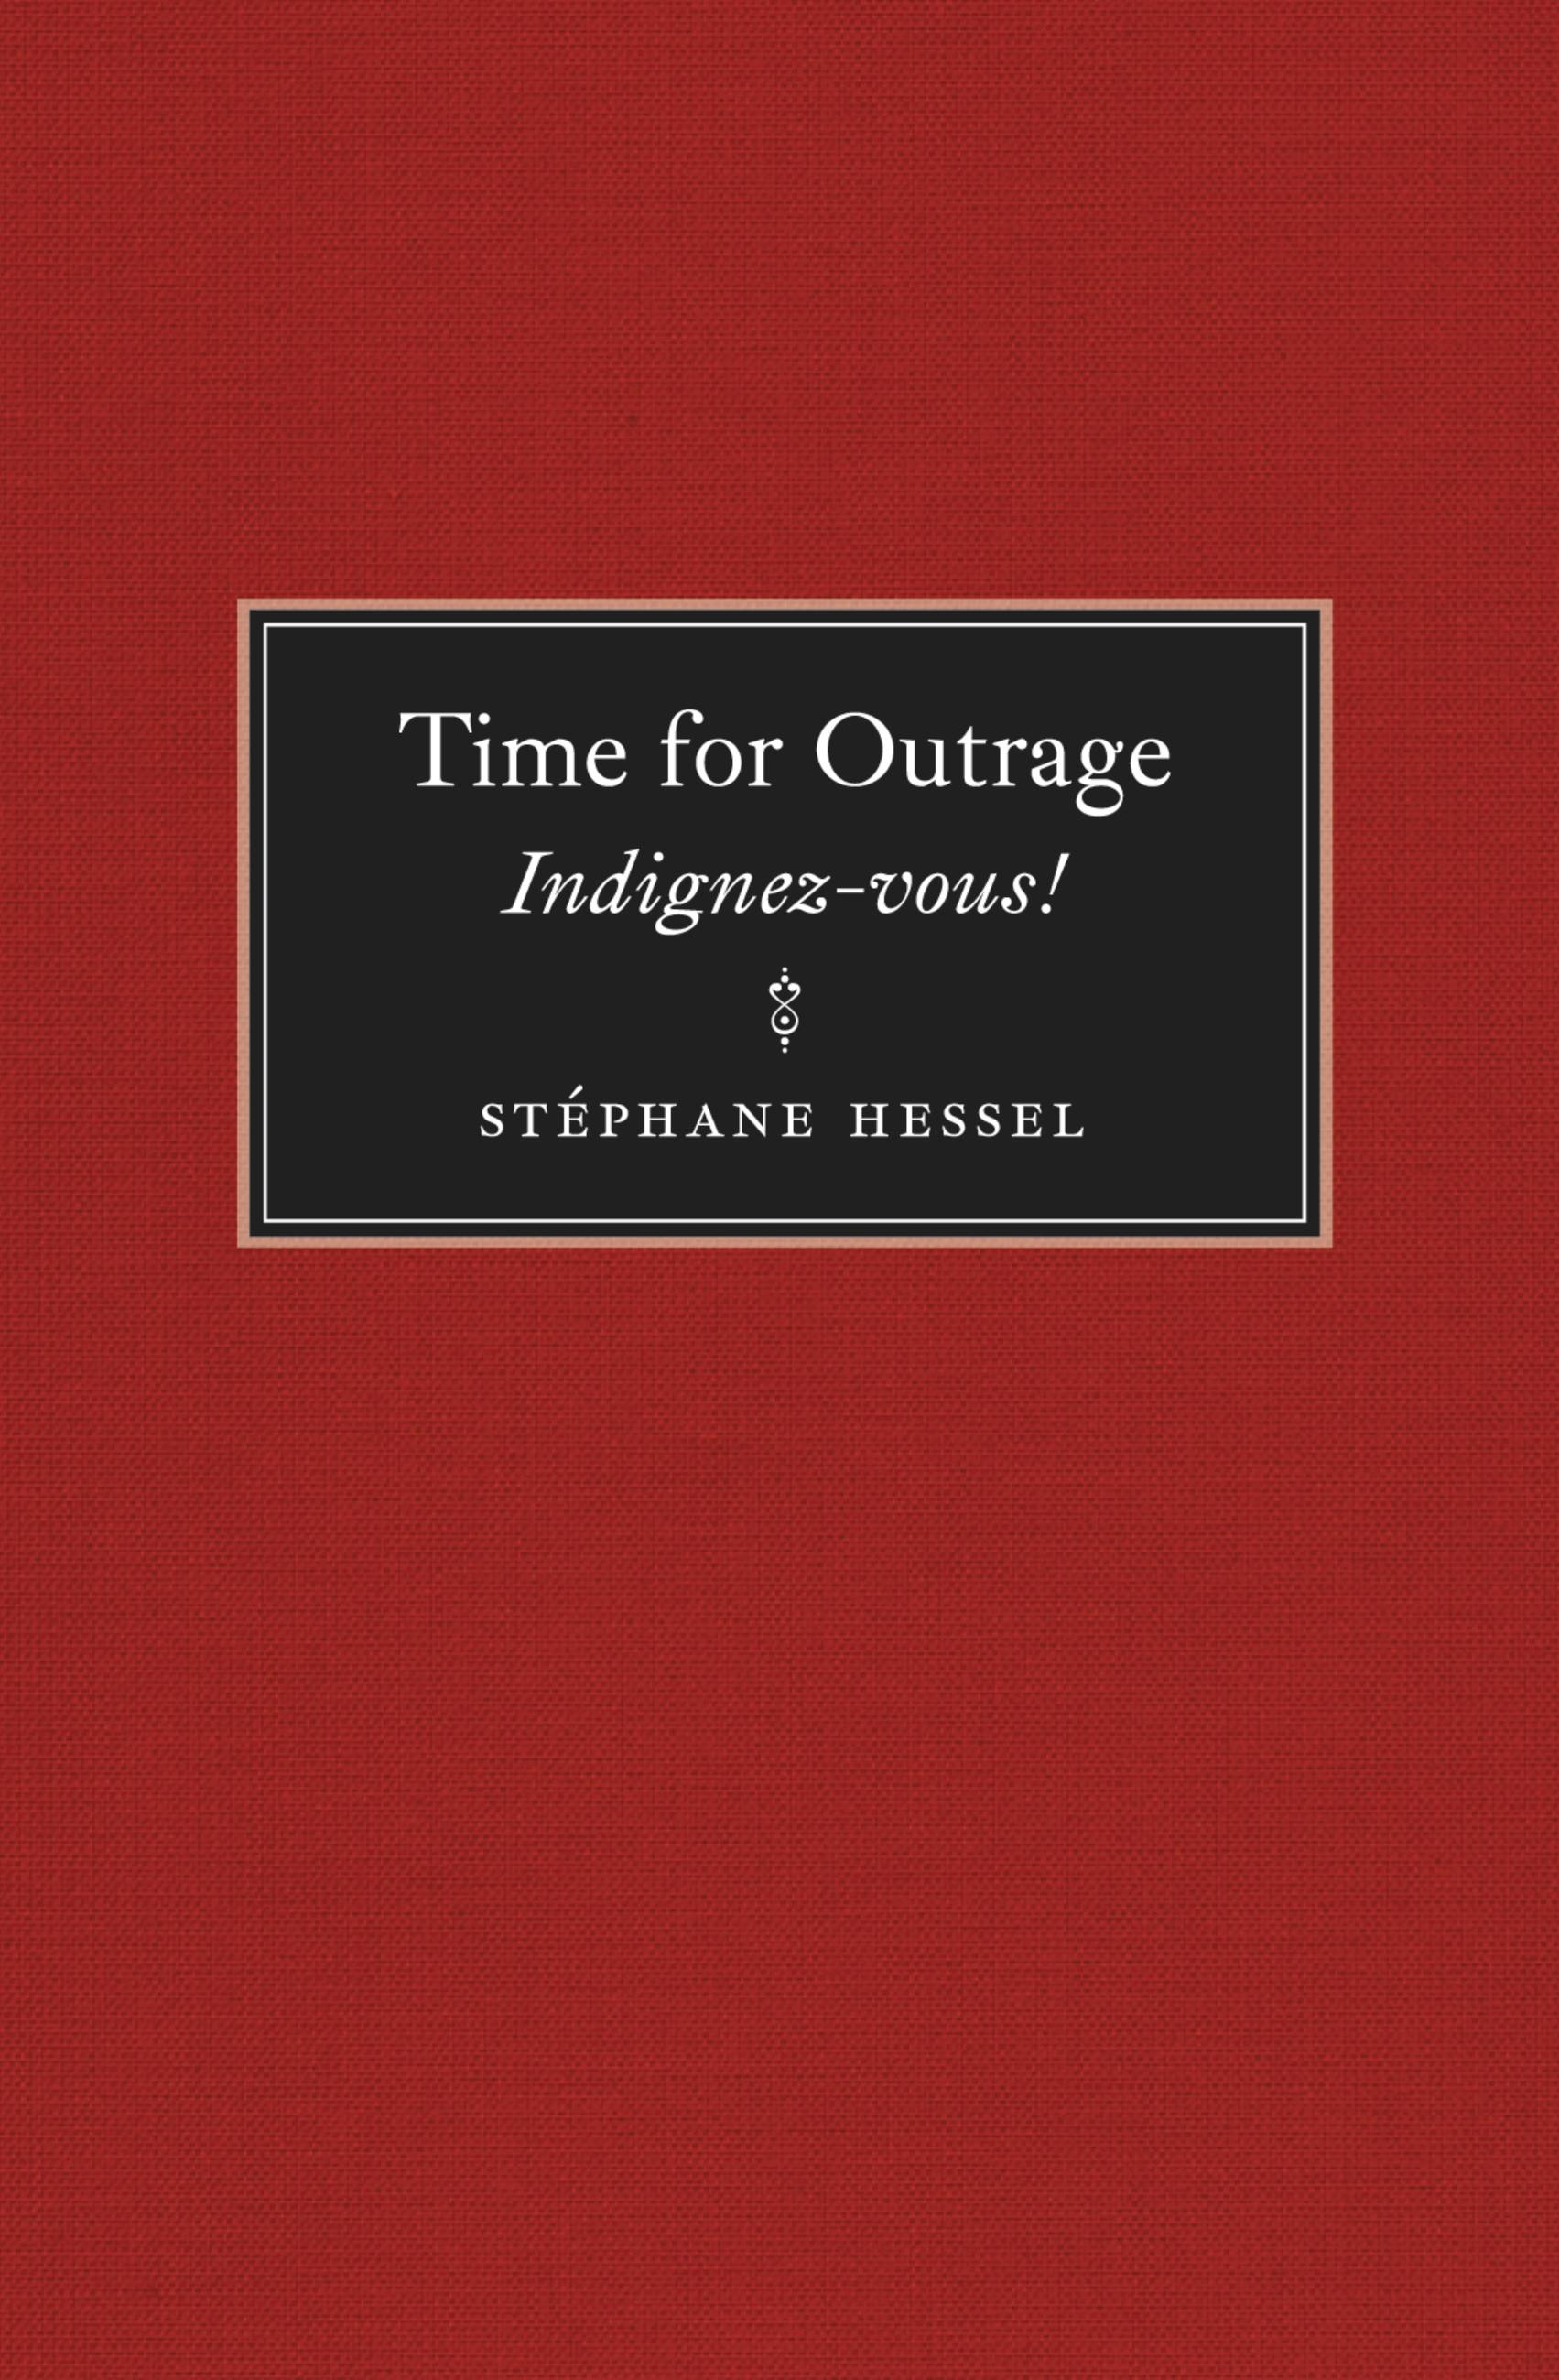 Time for Outrage